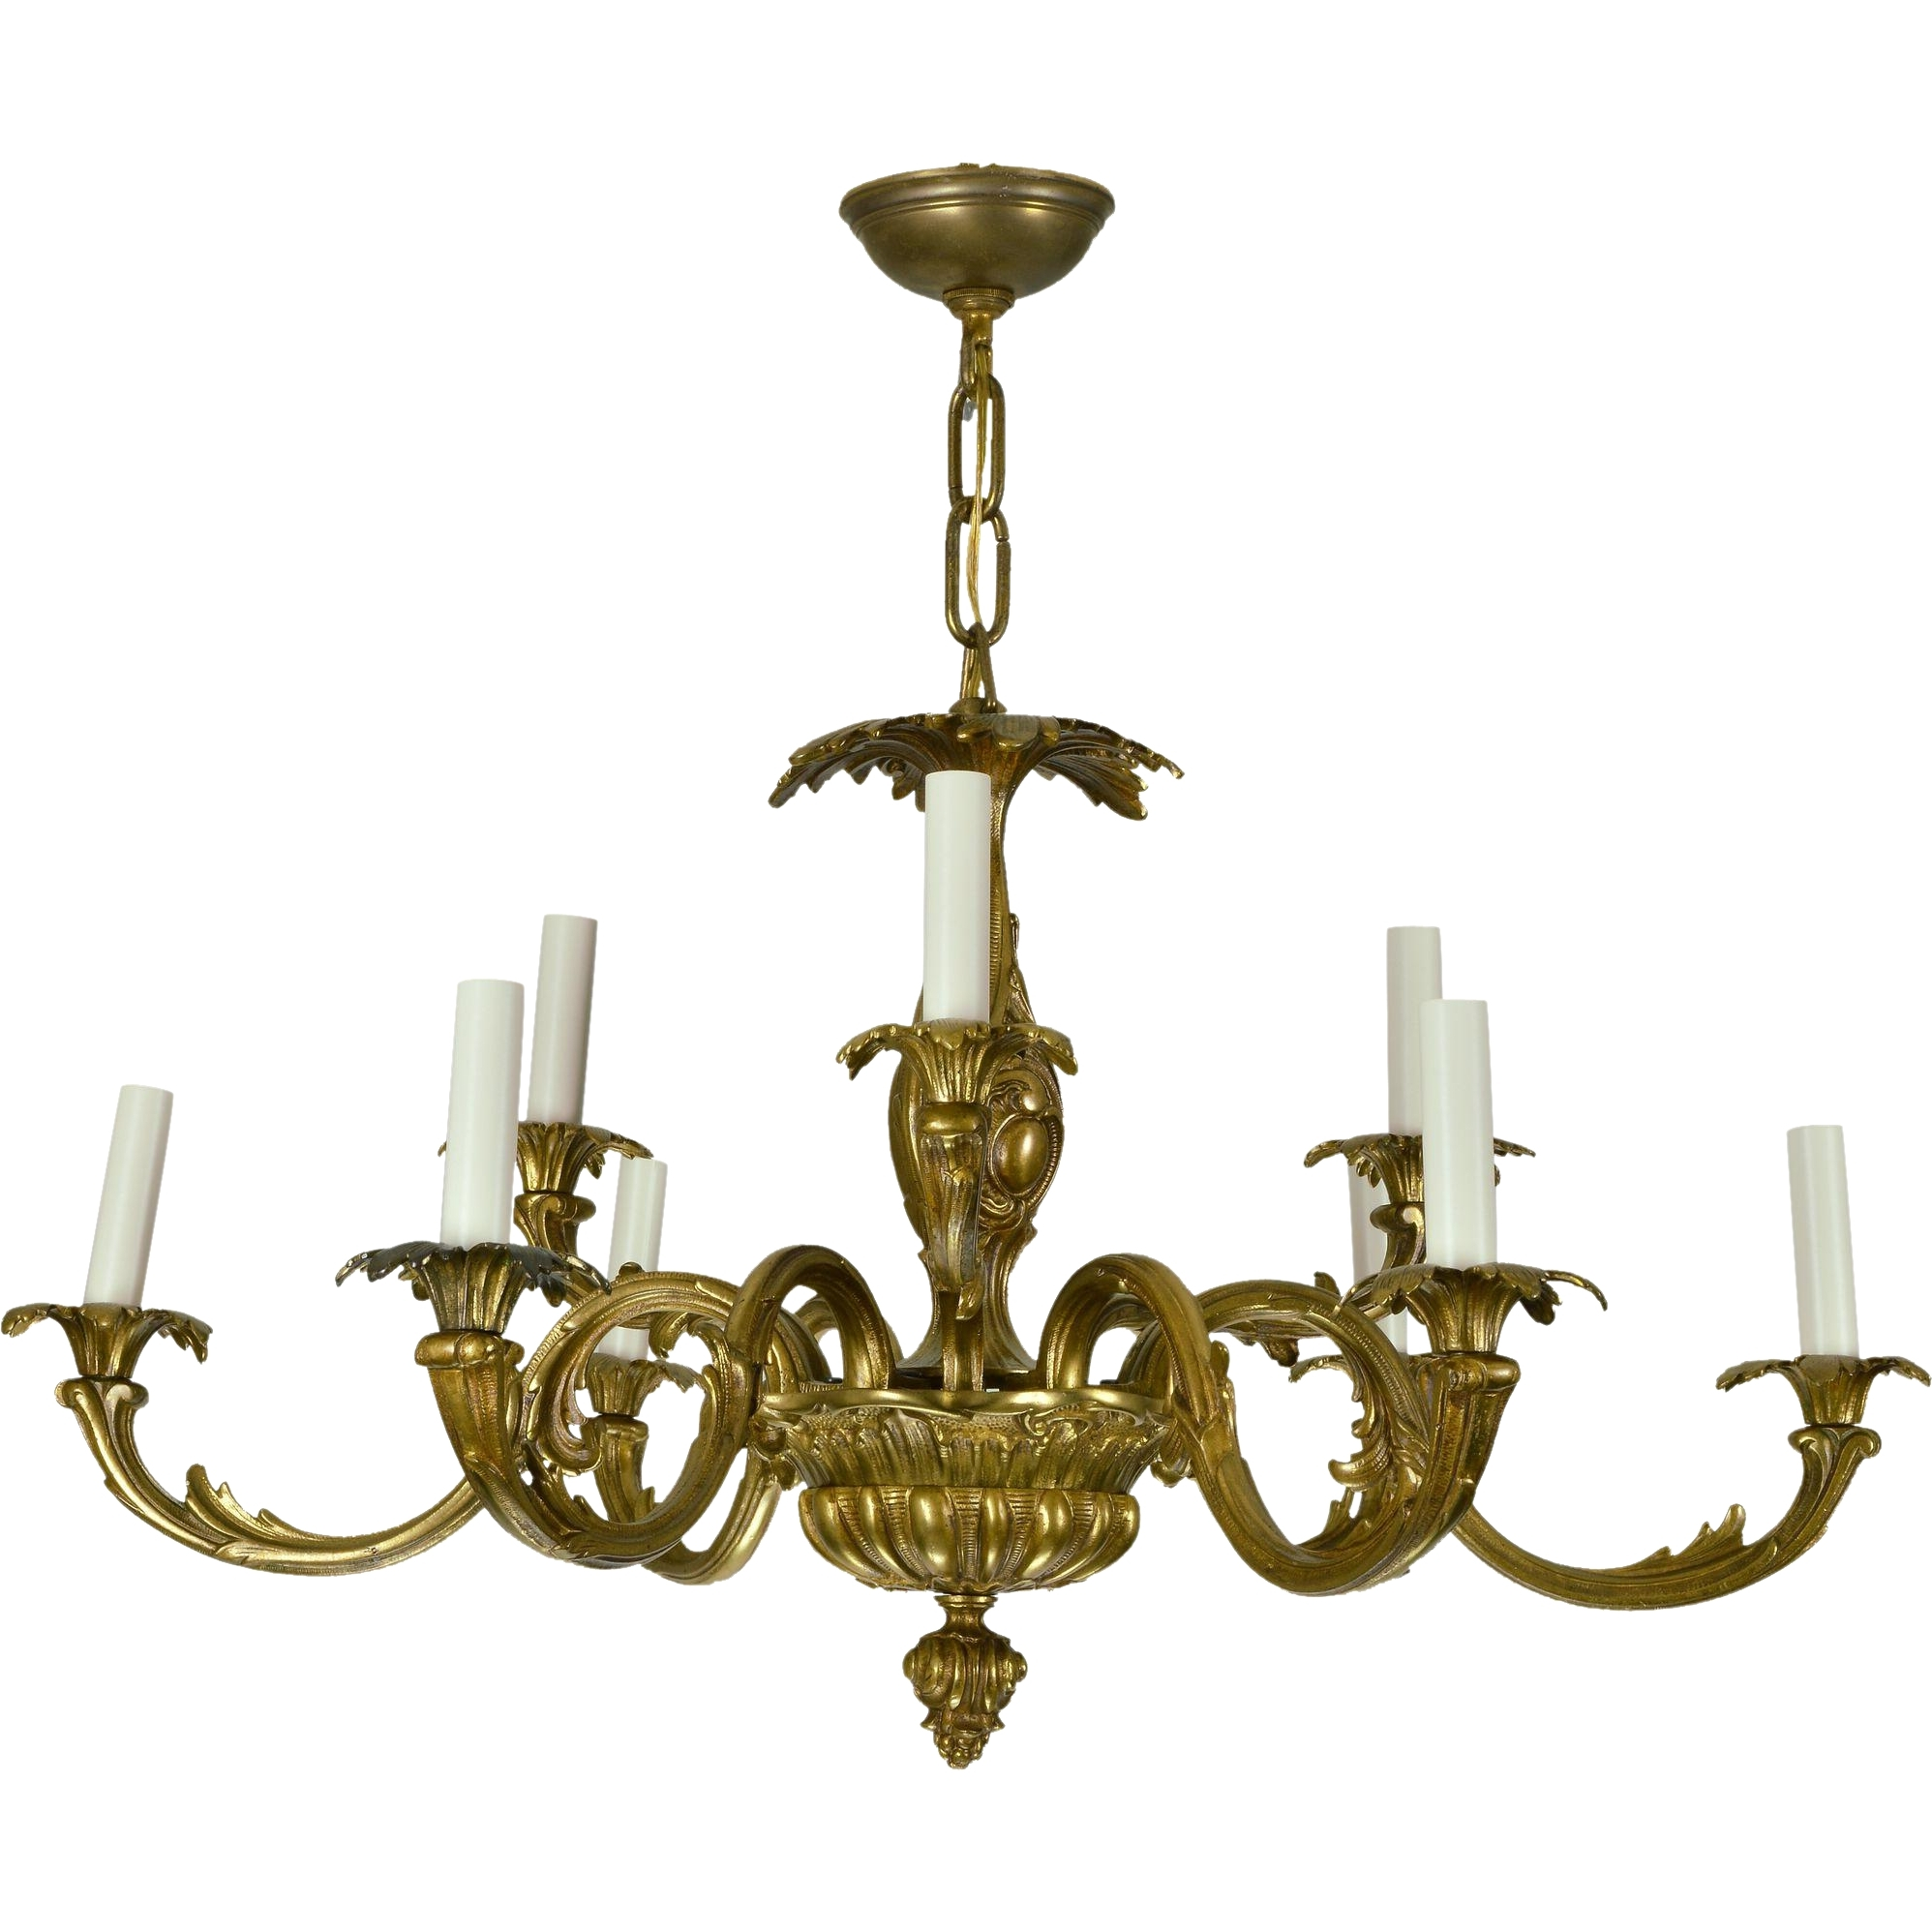 Vintage Brass Chandeliers Intended For 2019 Home Design : Graceful Antique Brass Chandeliers Vintage Chandelier (View 7 of 20)